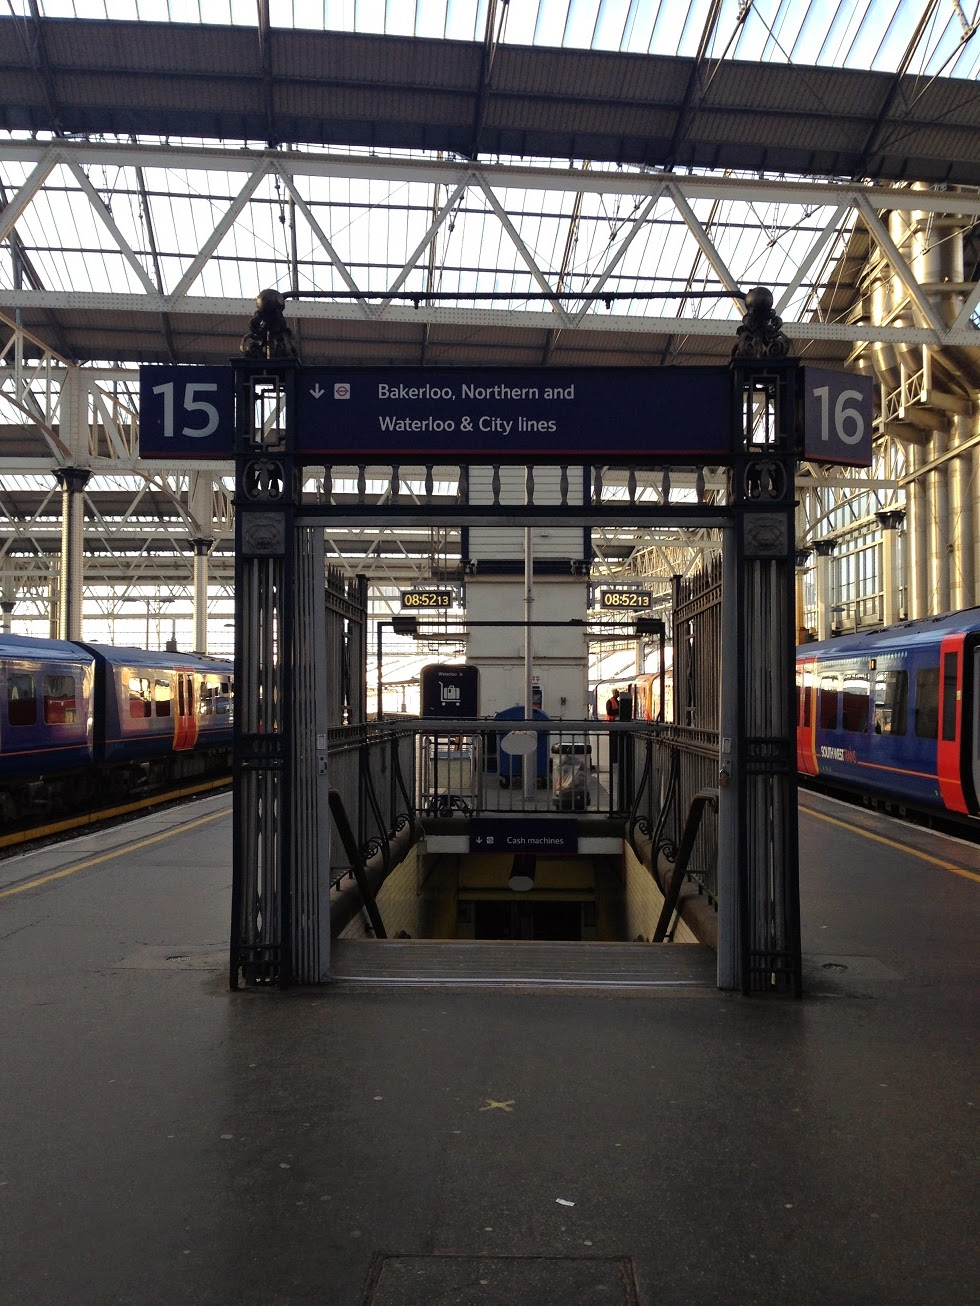 Entrance to the London Underground, Waterloo station, London